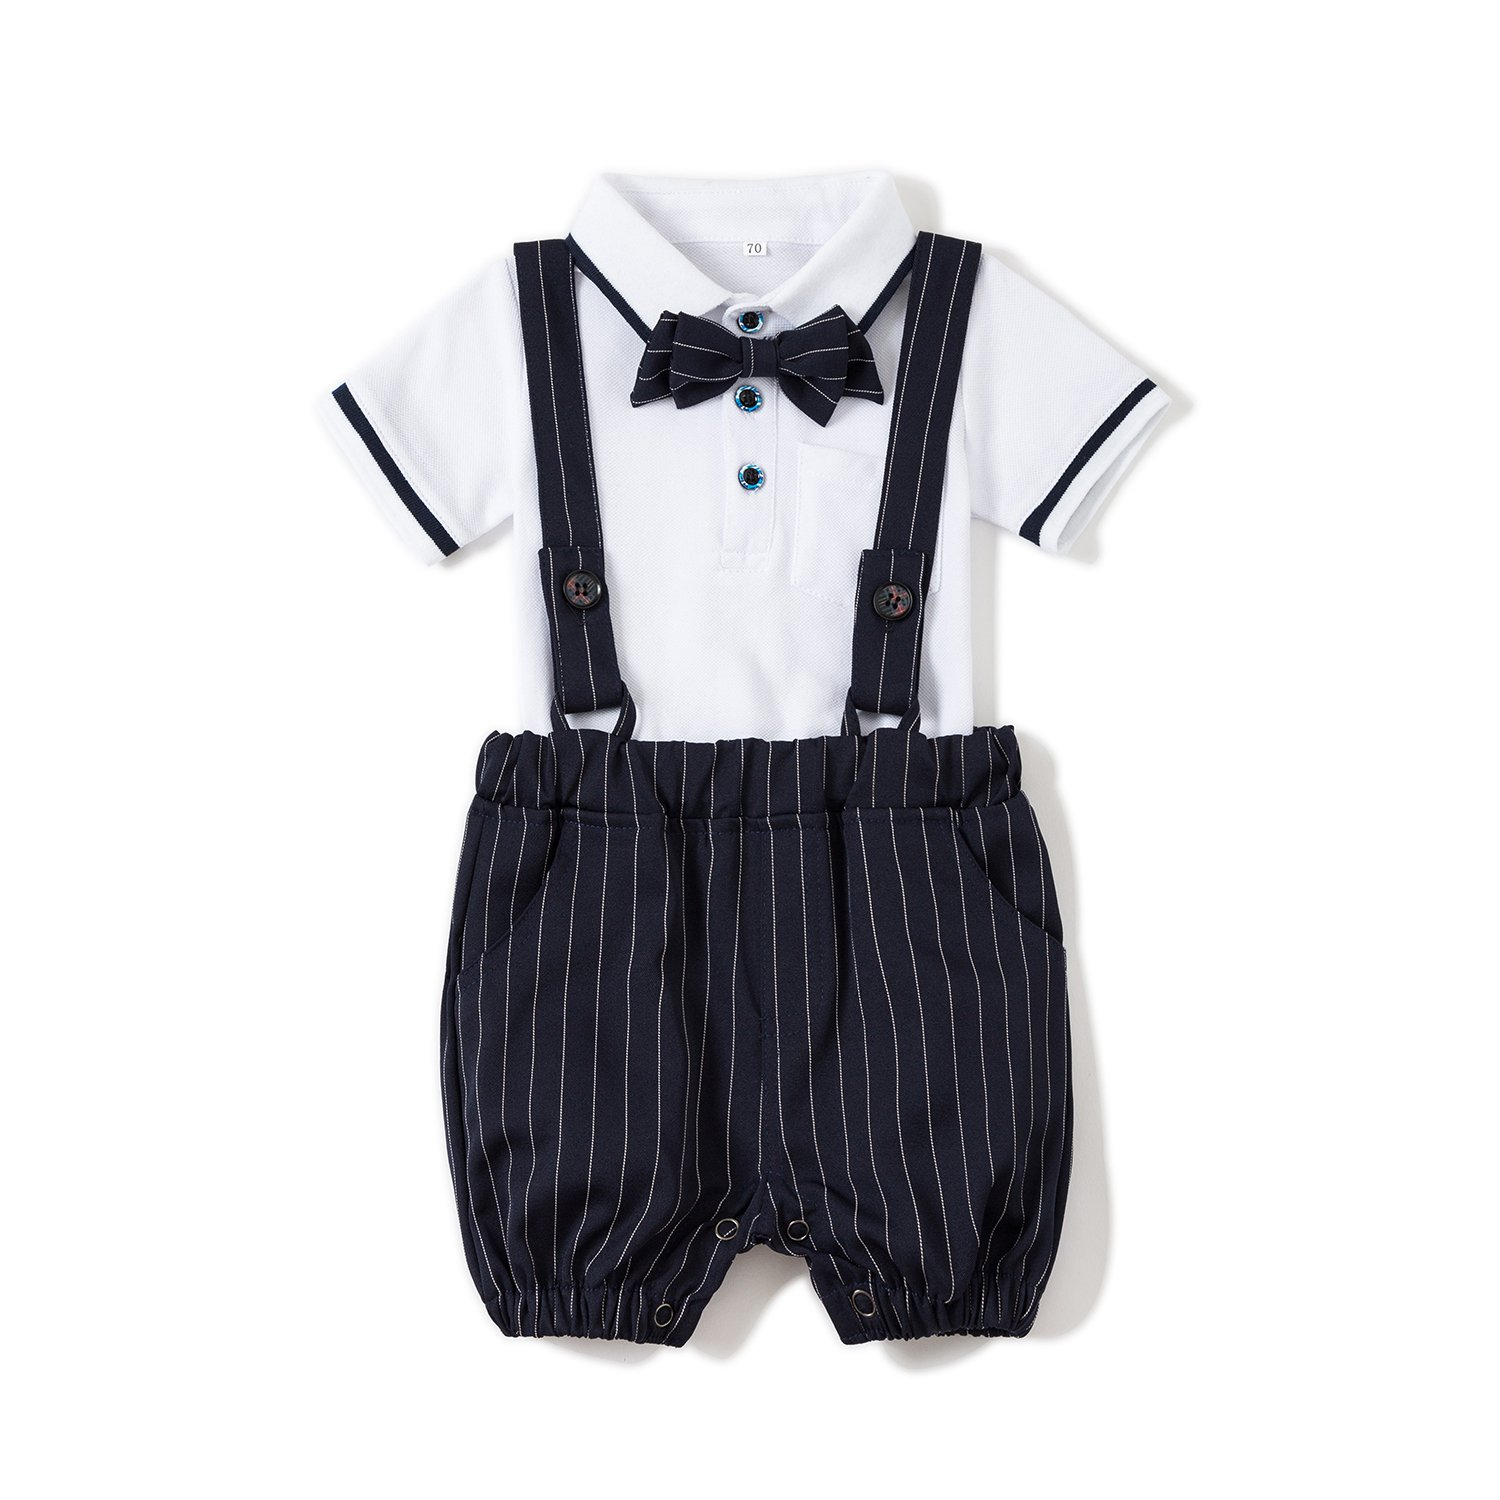 Baby Boys Gentleman Jumpsuit Outfits Suits Bow Tie Overalls Clothes Set (0-6Months, Blue) by Baby Love (Image #1)